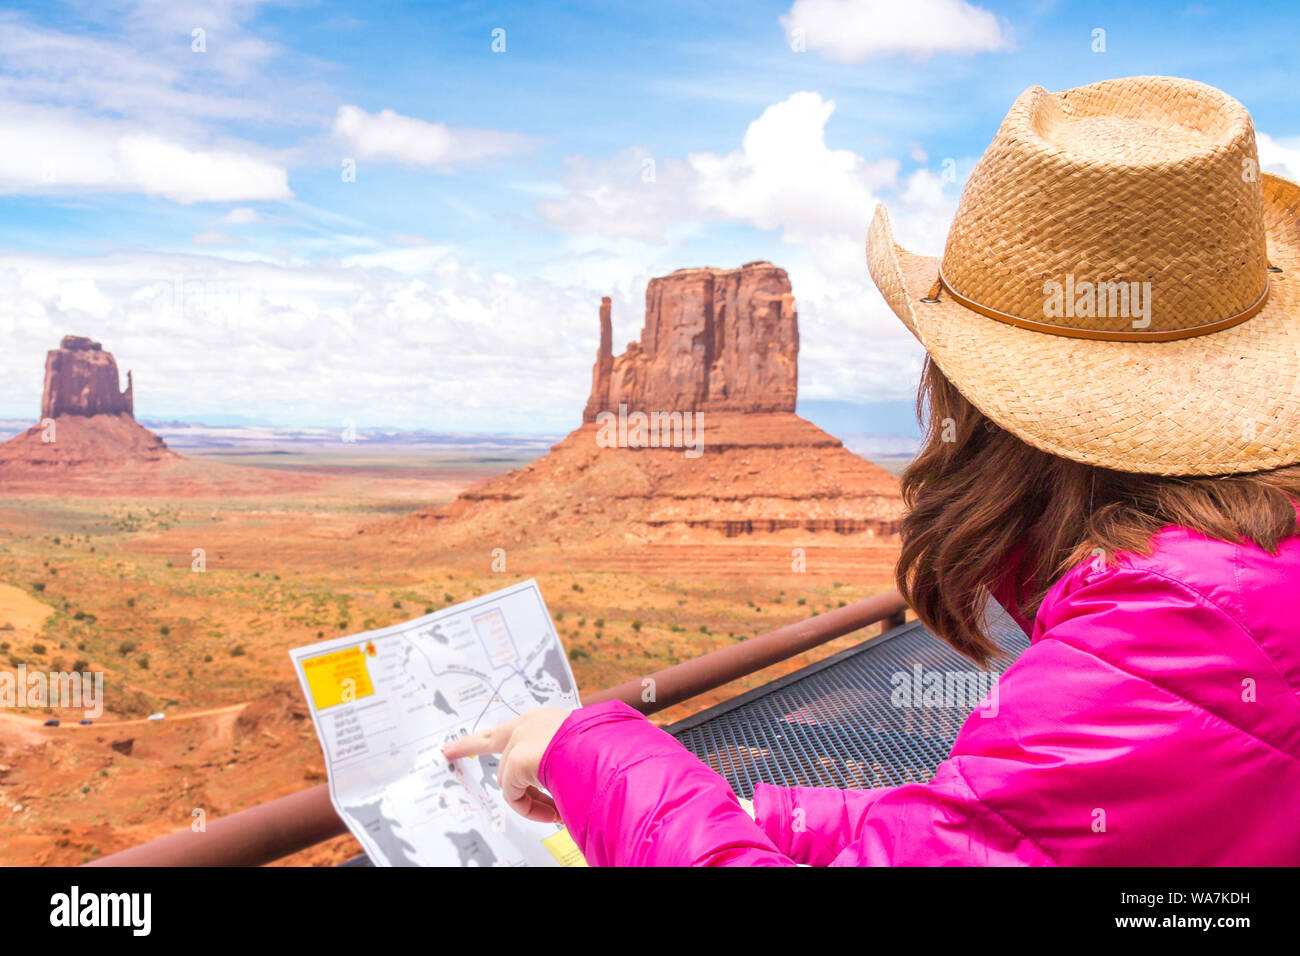 Map Of Arizona Monument Valley.Woman Sitting And Looking At Map In Monument Valley With Red Rocks